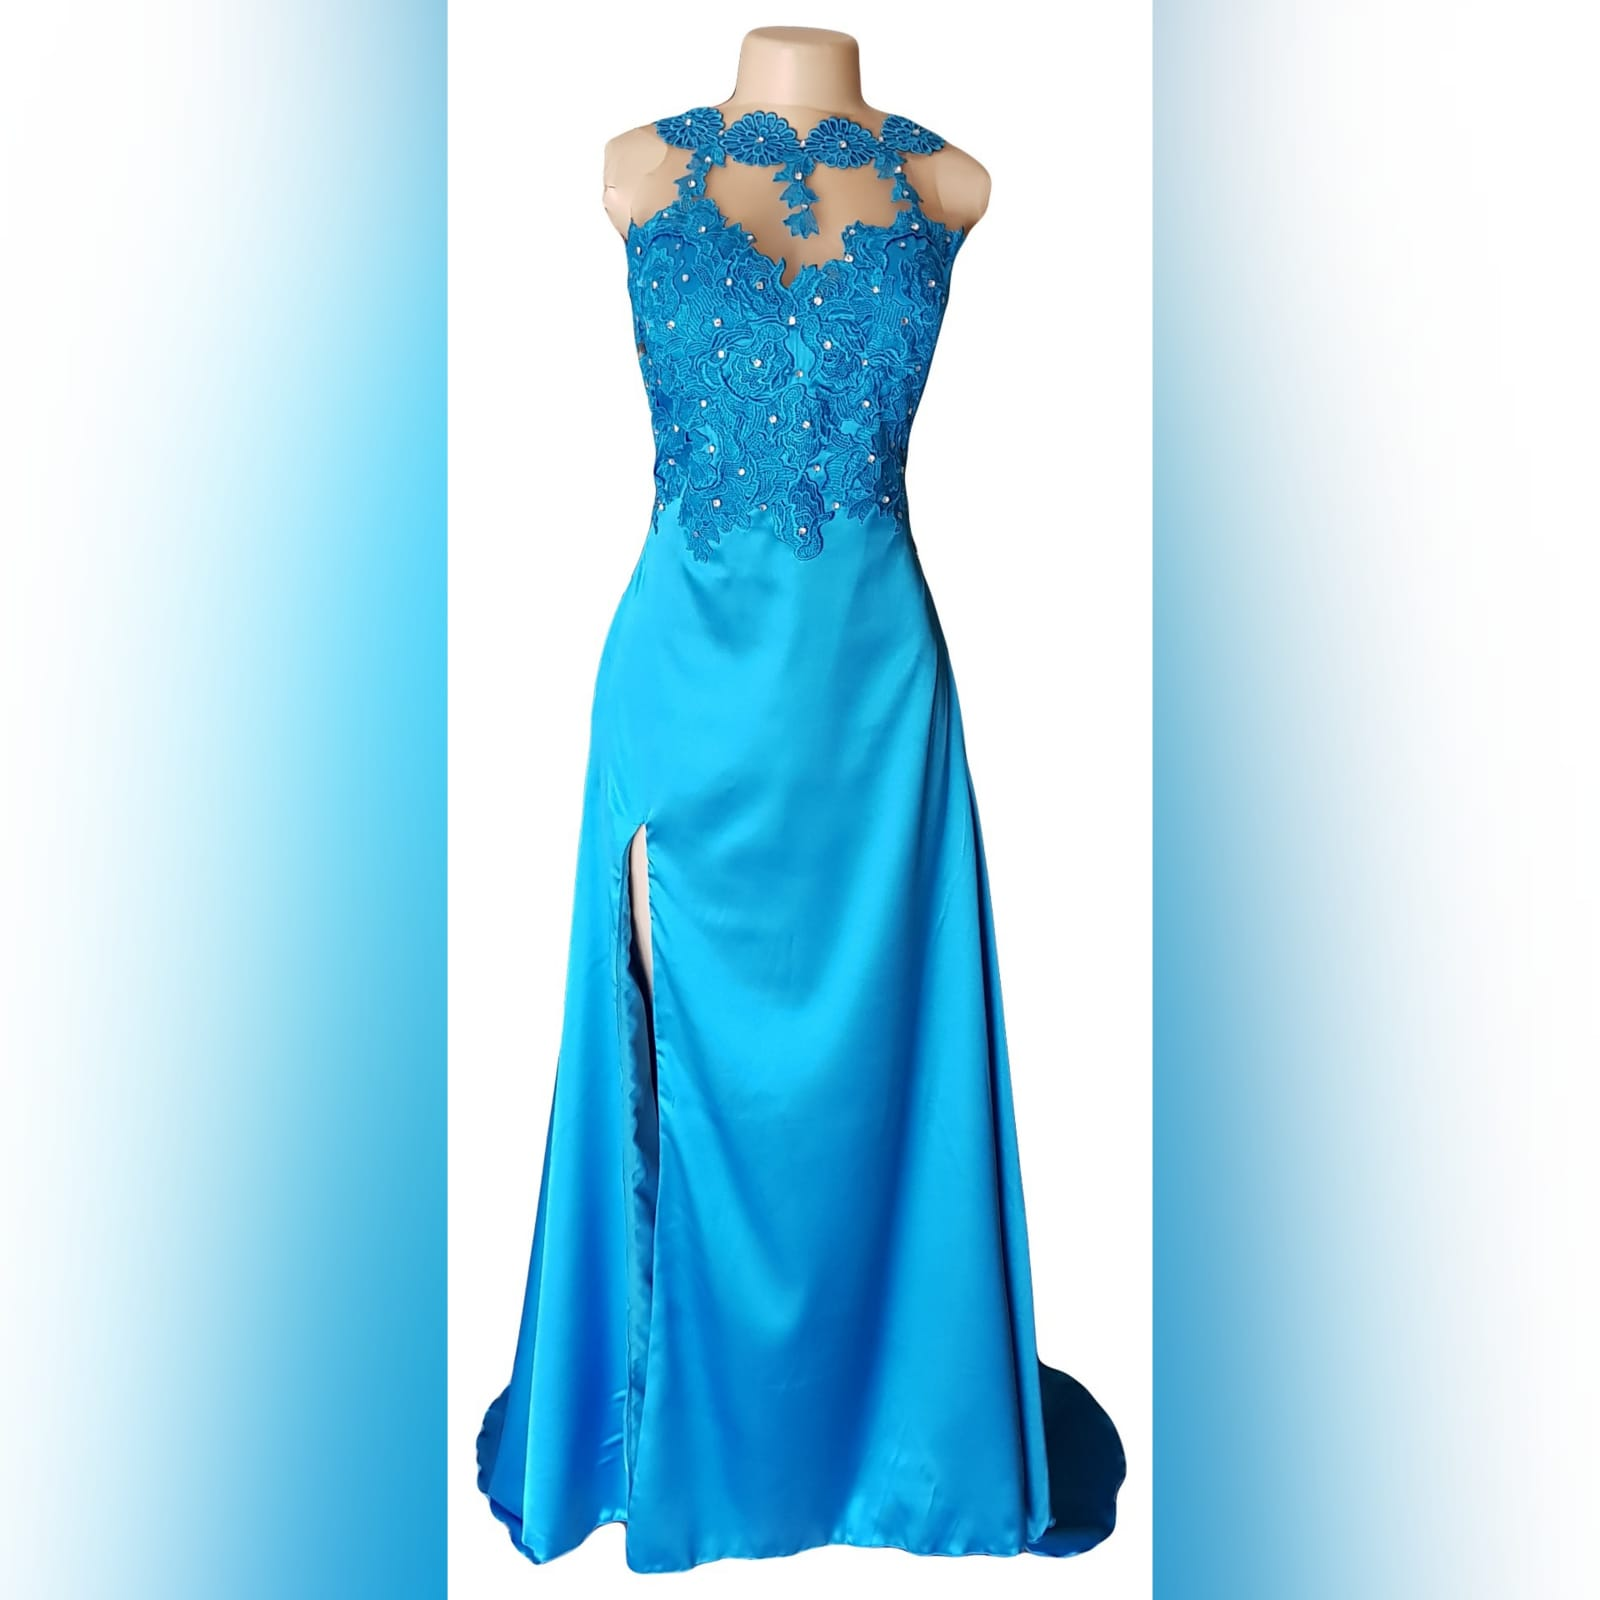 Blue long satin lace prom dress 5 blue long satin lace prom dress. Lace bodice with an illusion neckline and oval back opening with a slit and a train.